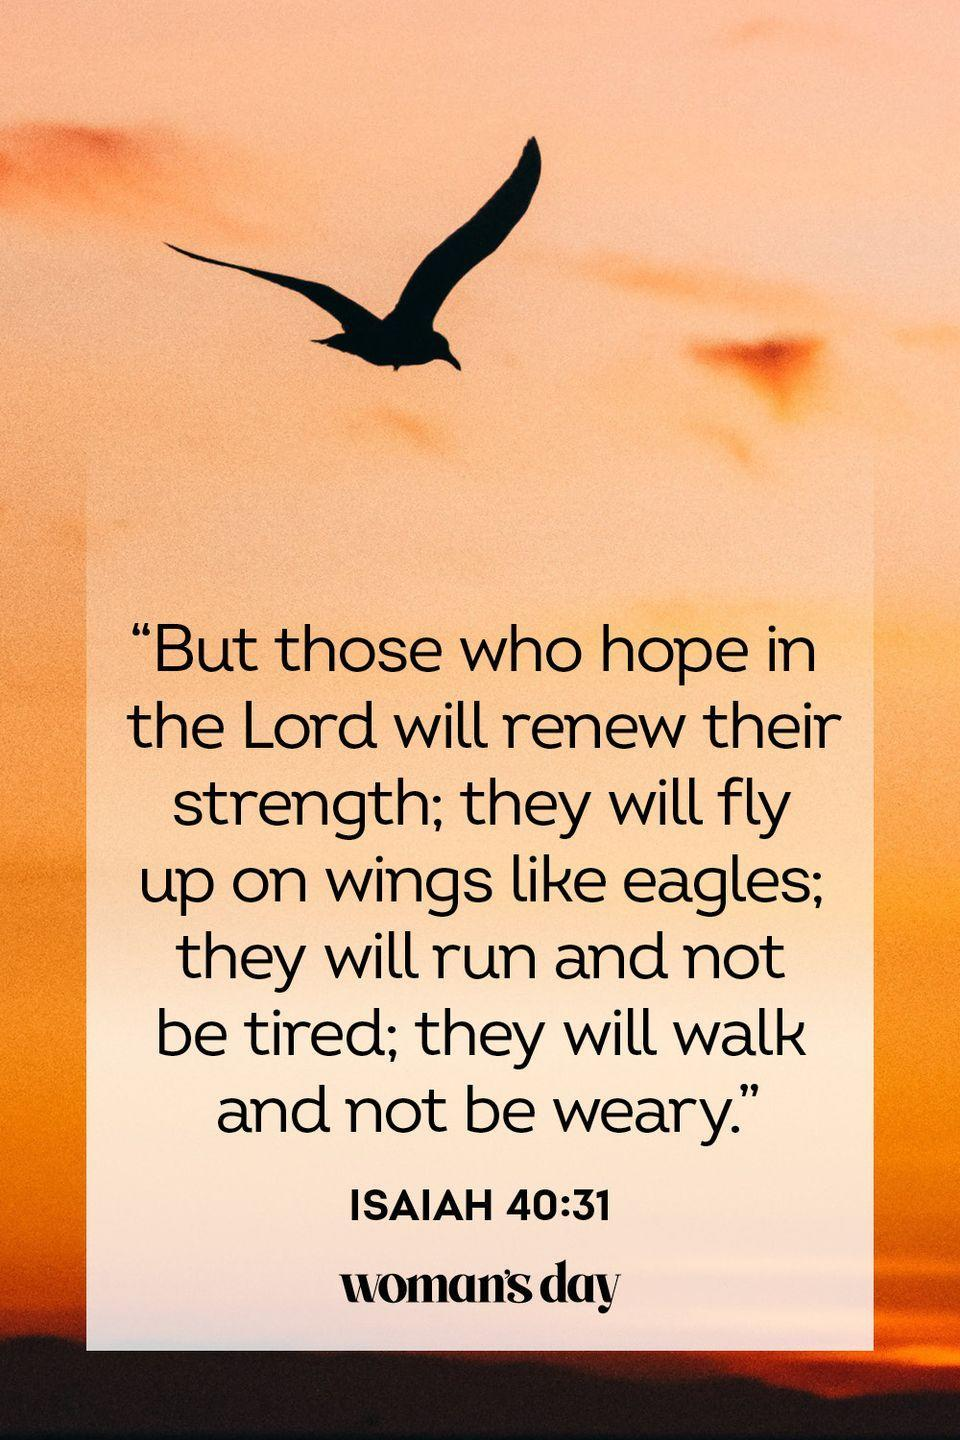 """<p>""""But those who hope in the Lord will renew their strength; they will fly up on wings like eagles; they will run and not be tired; they will walk and not be weary.""""</p><p><strong>The Good News:</strong> For those who have faith that the Lord watches over them shall have the strength to overcome fear.</p>"""